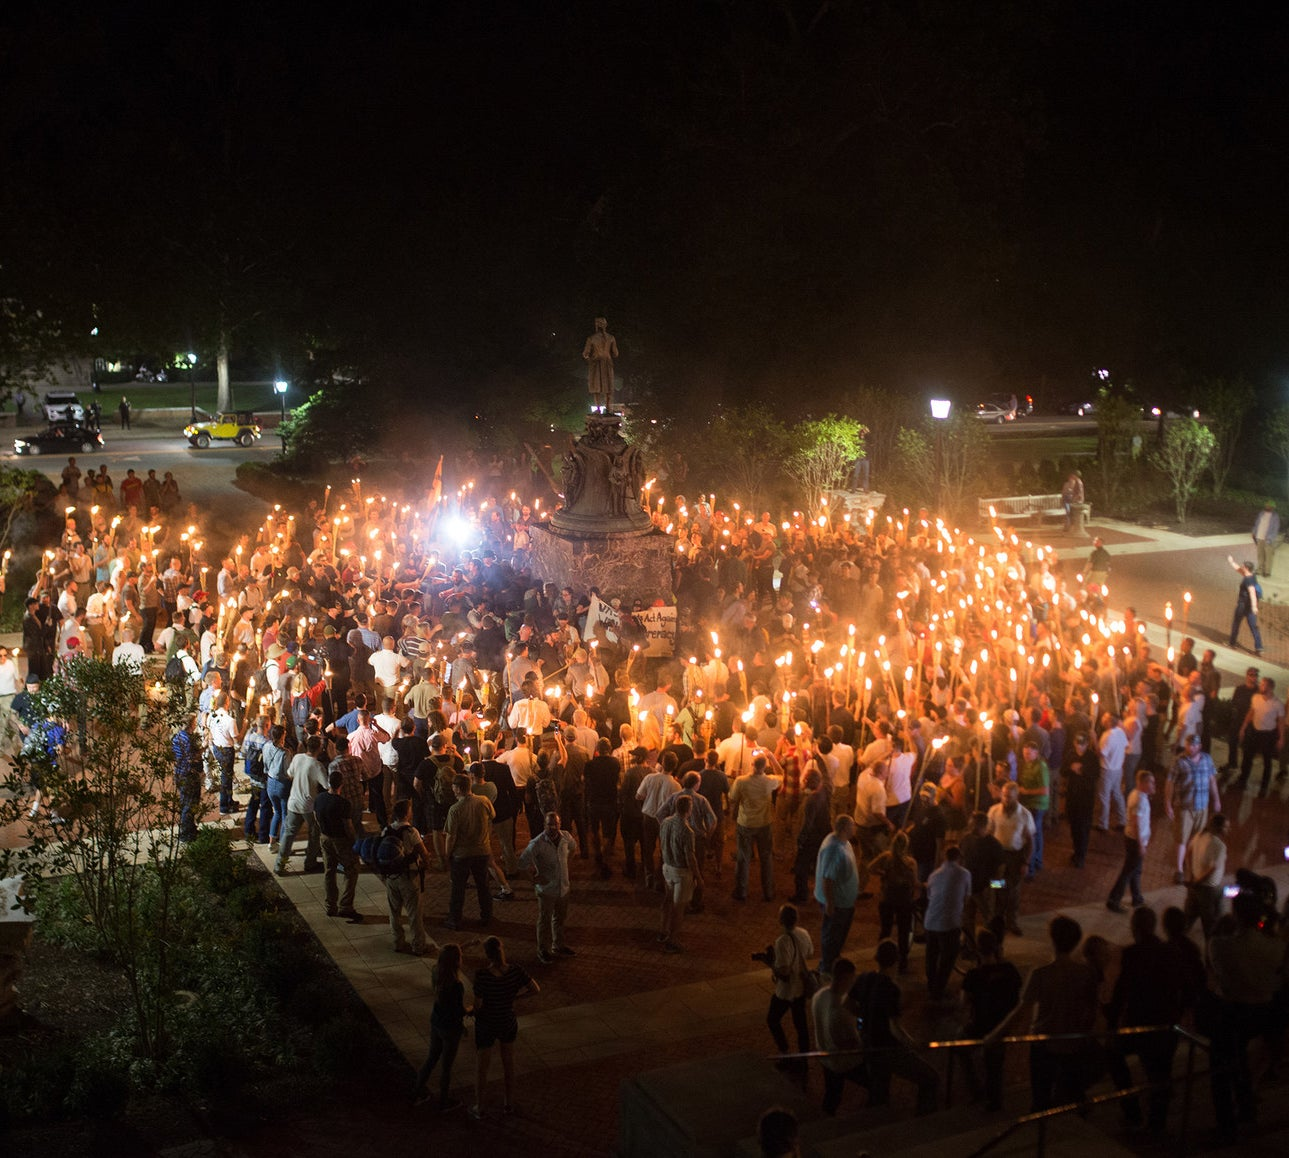 Protesters encircled counterprotesters at the base of a statue of Thomas Jefferson after marching through the University of Virginia campus on Friday night.